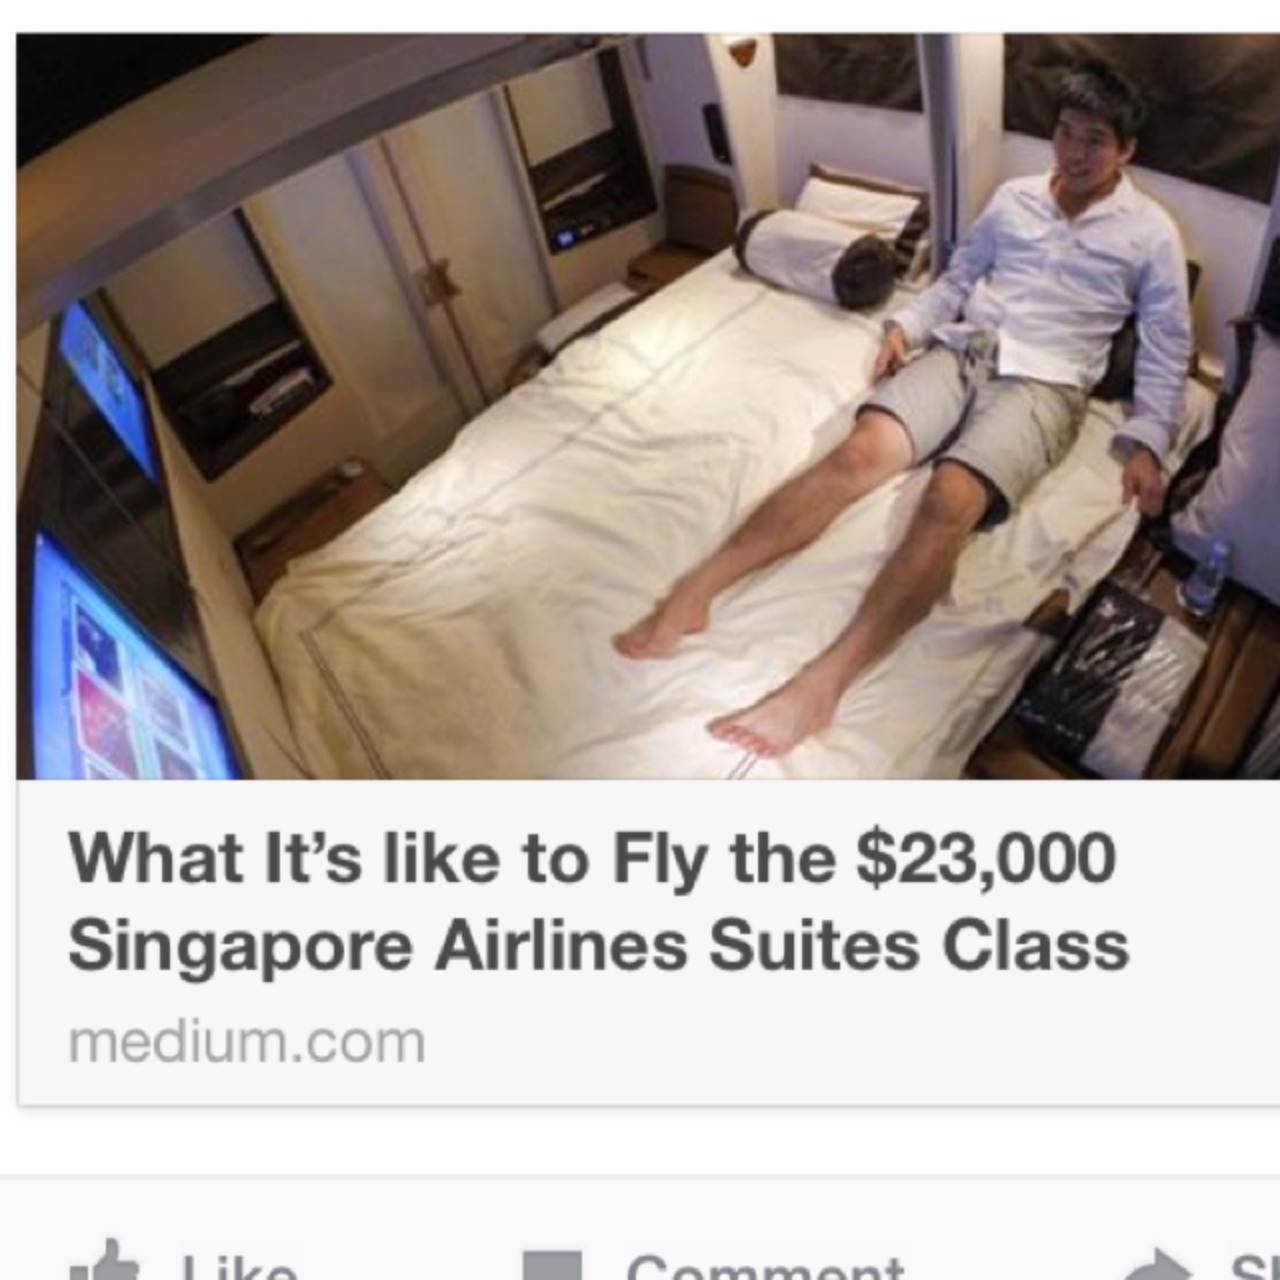 https://medium.com/travel-adventure/what-its-like-to-fly-the-23-000-singapore-airlines-suites-class-17d9f3fee0d  I would so do this… Anyone else coming?? with Bill, Ulli, Peter, Dan, Hugo💋, Scott, Alberto, John, Roy, and  El Oysito  – View on Path.